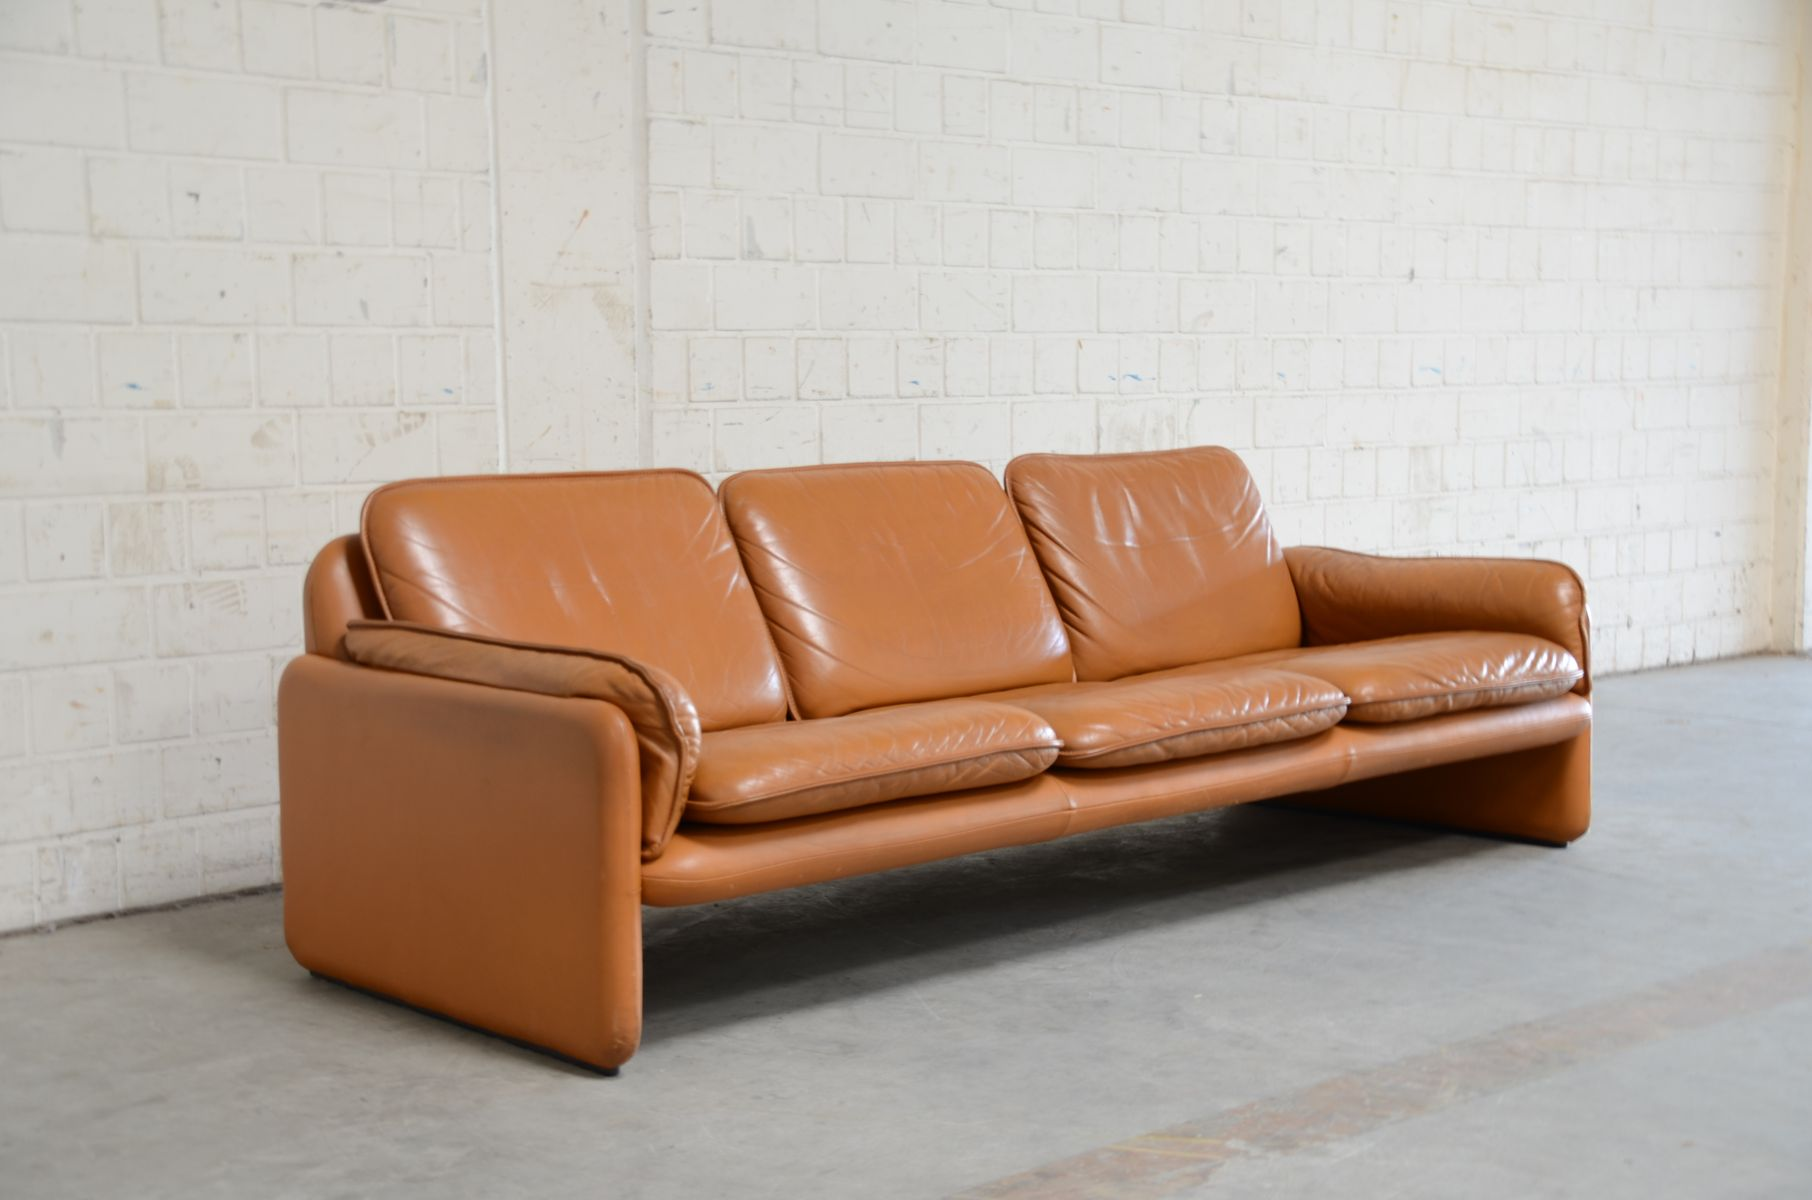 de sede sofa vintage slipcover diy ds 61 in cognac leather from for sale